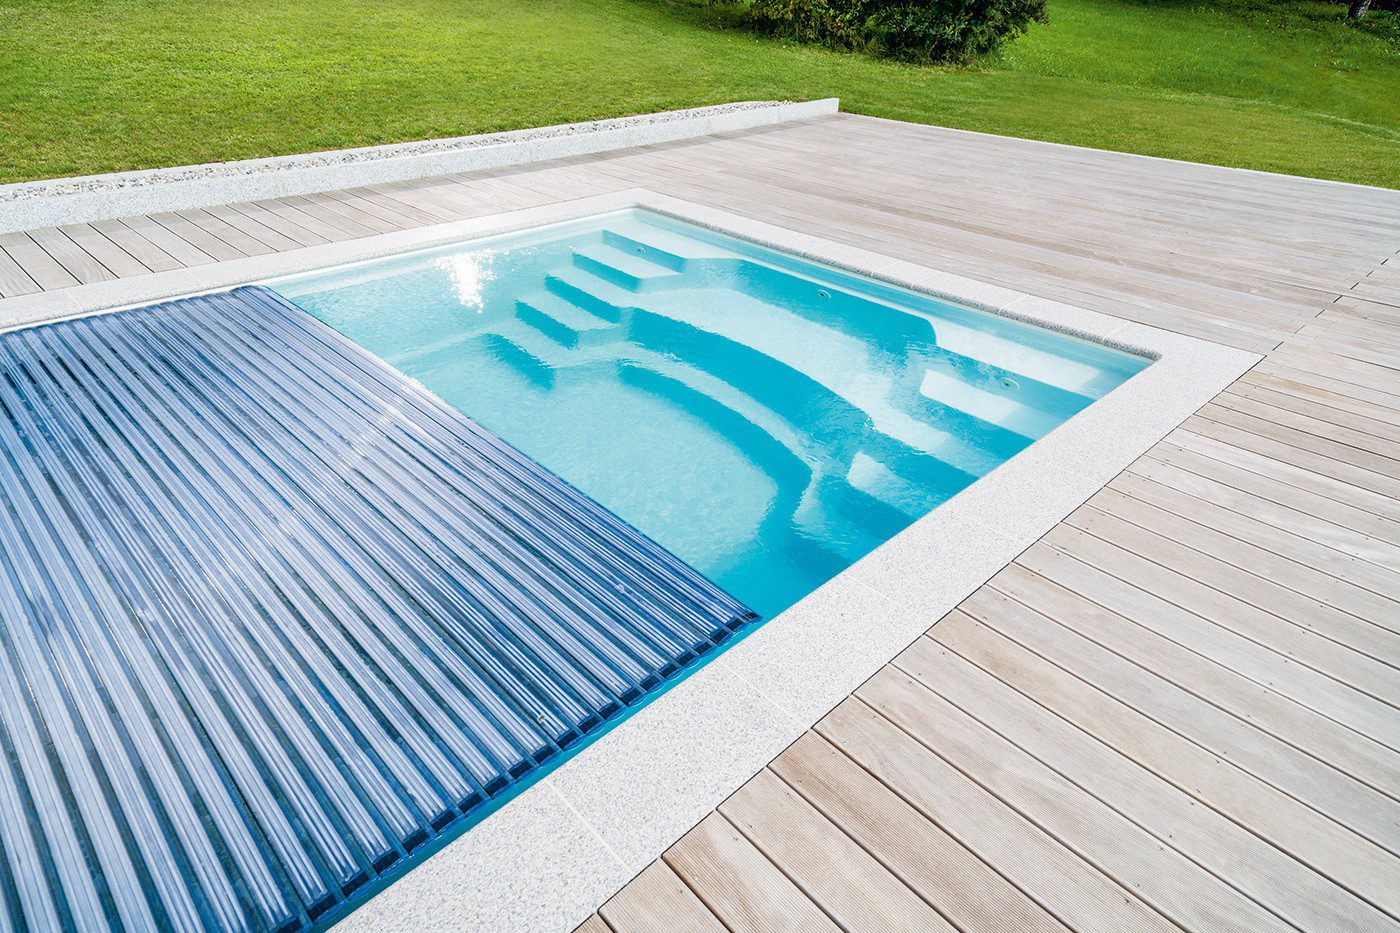 novermber R Model 10M ceramic-fibreglass swimming pool with Roll-away safety cover